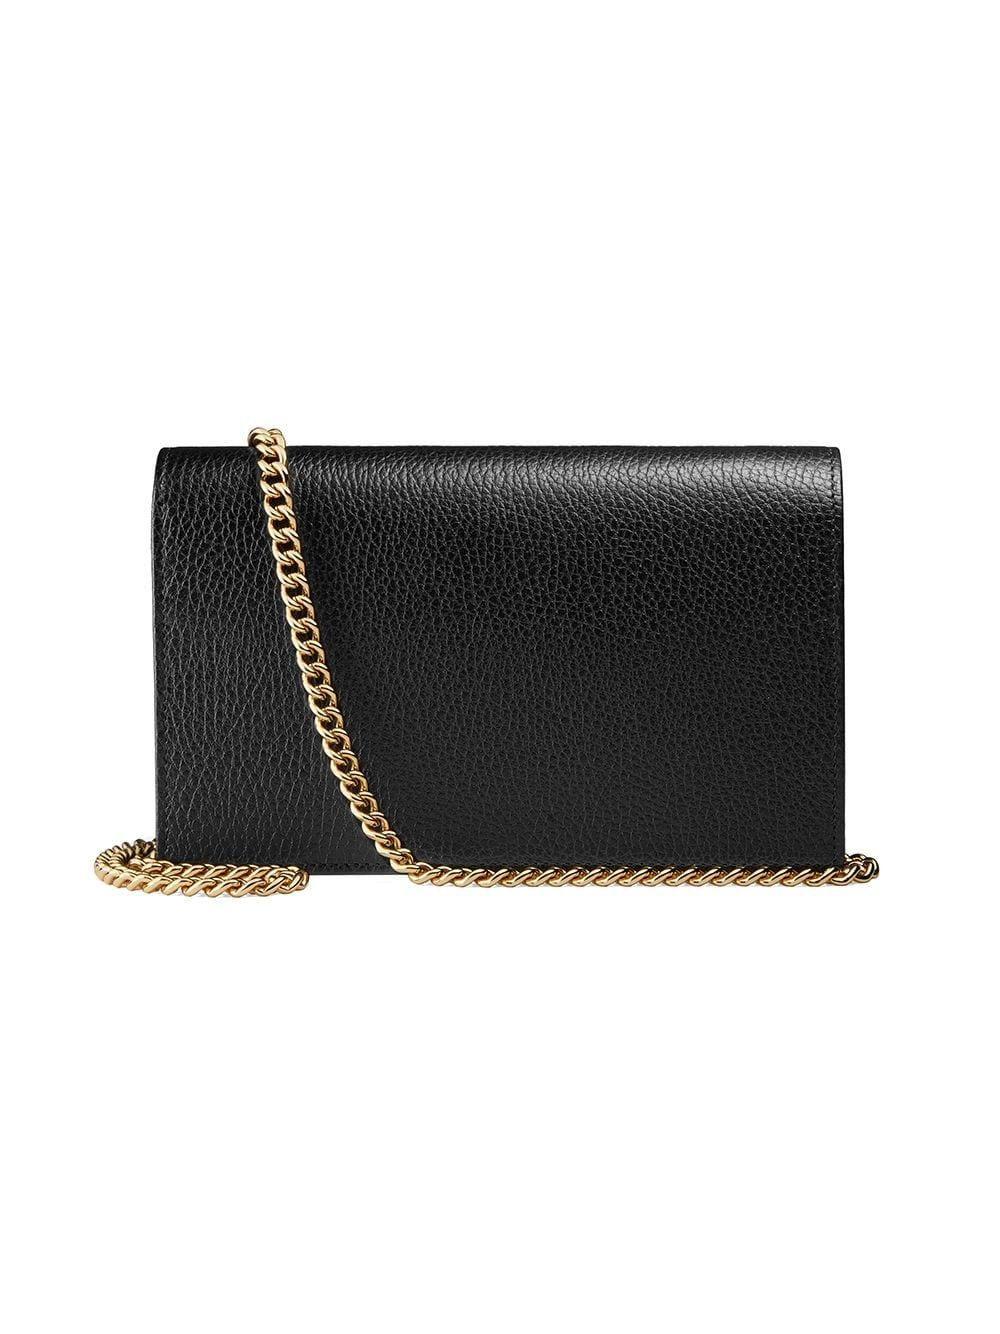 5676f8169a9eab Gucci Gg Marmont Leather Mini Chain Bag in Black - Save 3% - Lyst